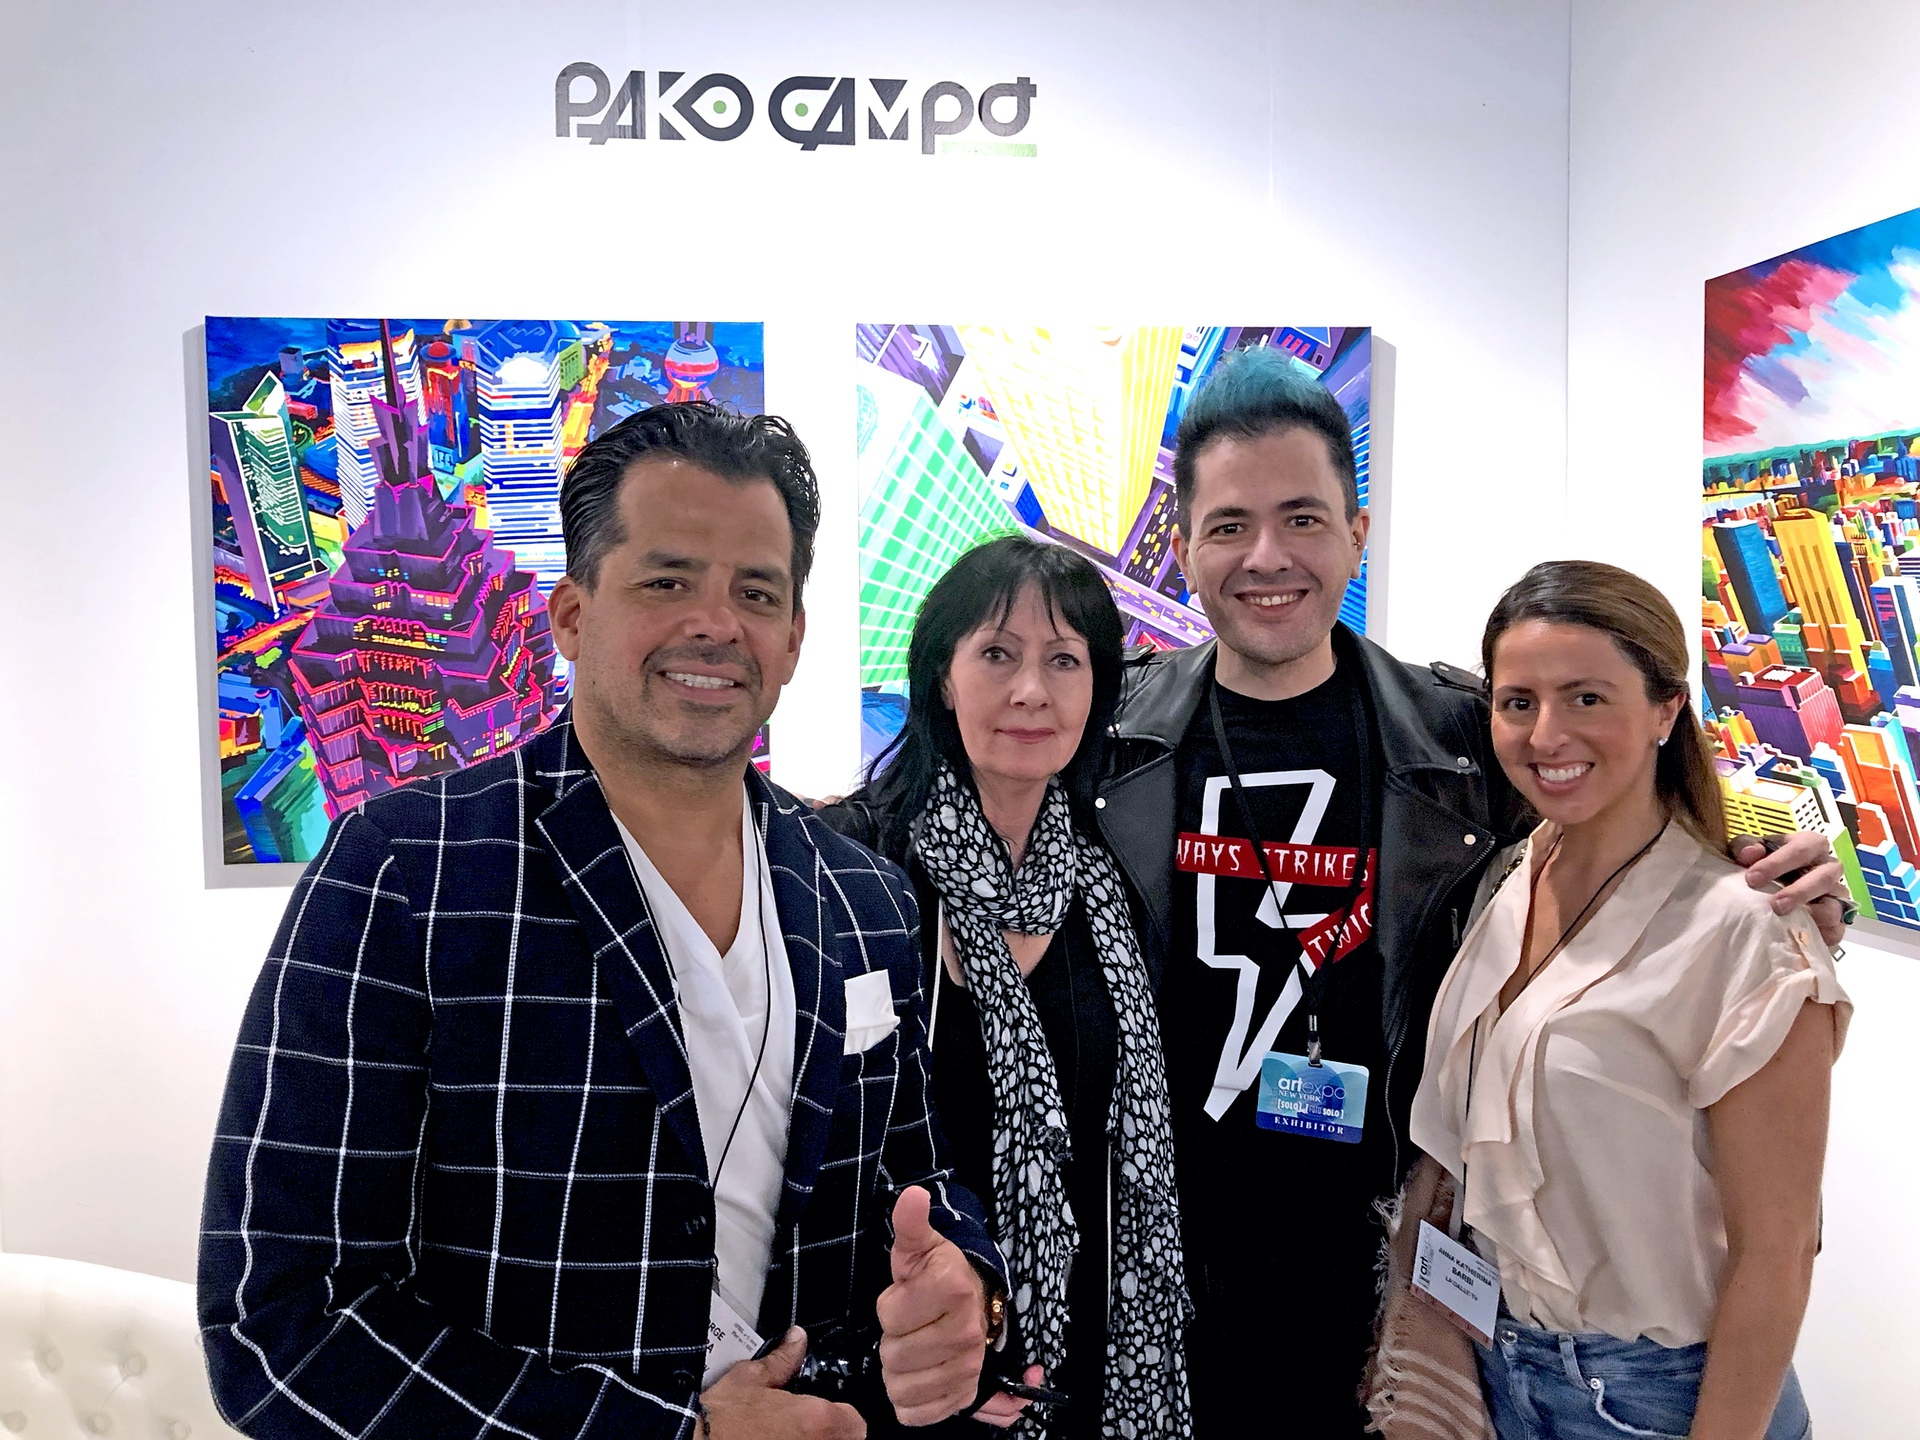 Last day of Artexpo New York 2019 05 by Pako Campo